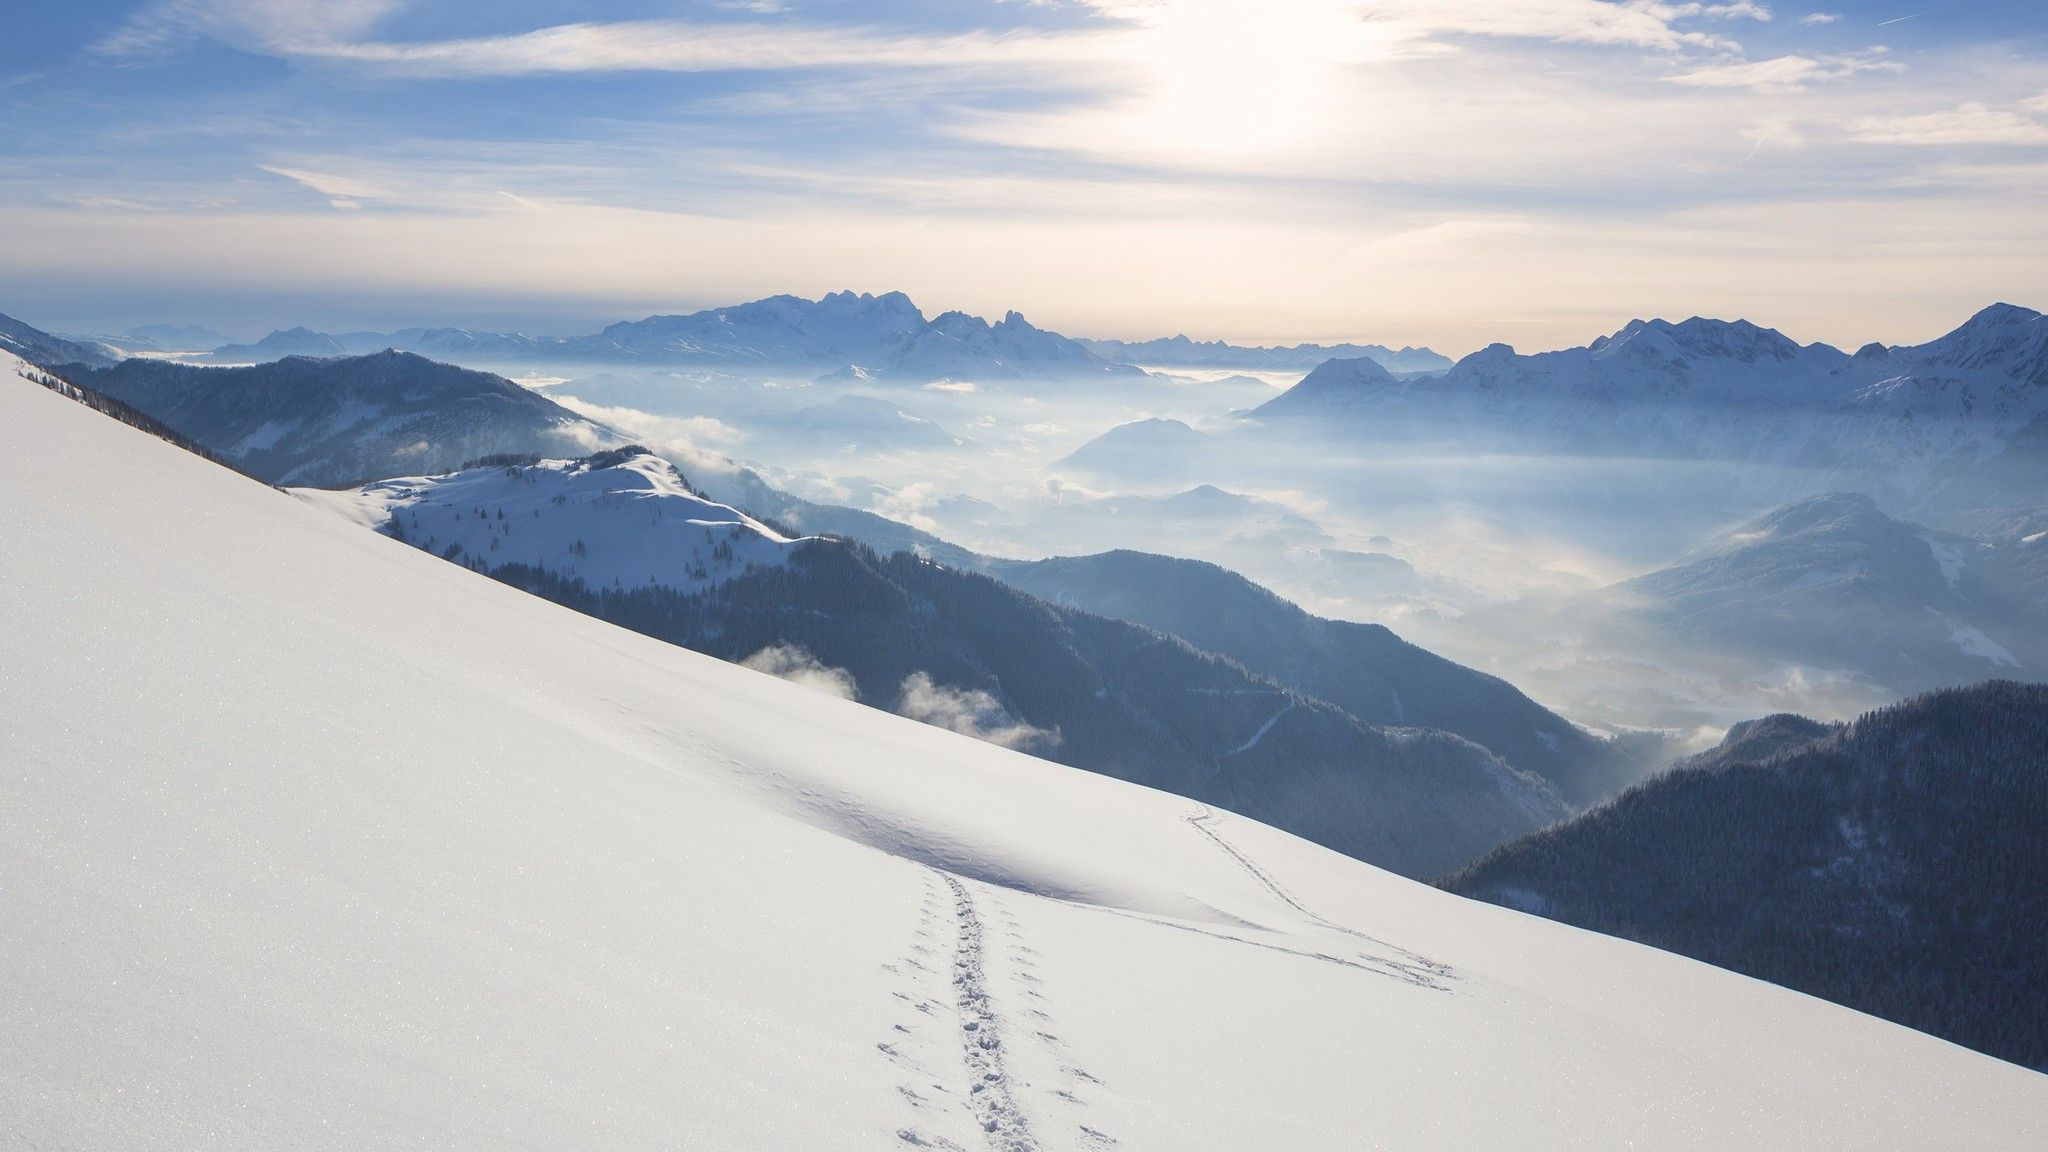 Snow Mountain Wallpapers High Quality Resolution Mountain Wallpaper Snow Mountain Wallpaper